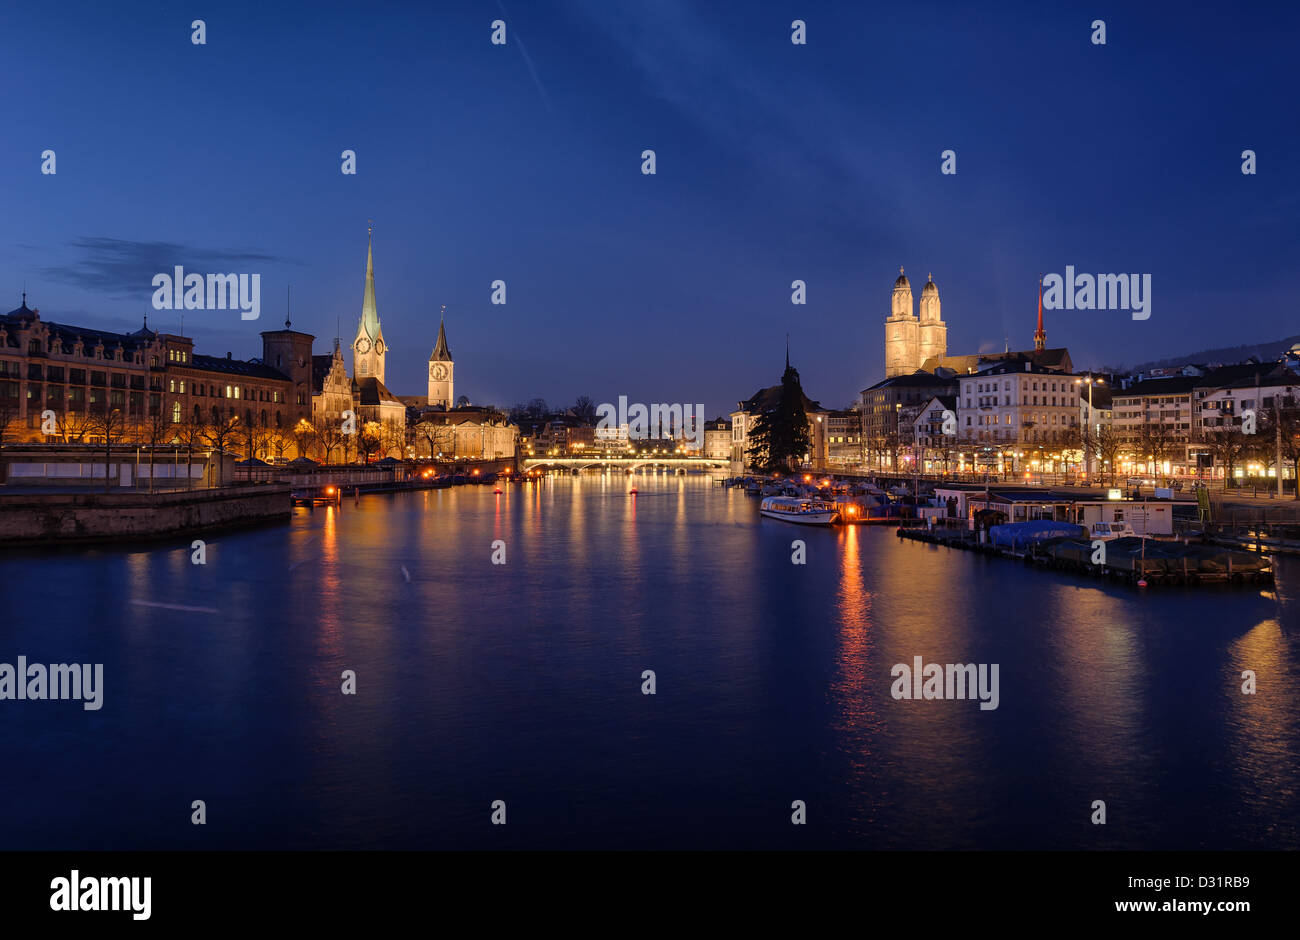 Zurich city center viewed from the river by night. Switzerland. - Stock Image